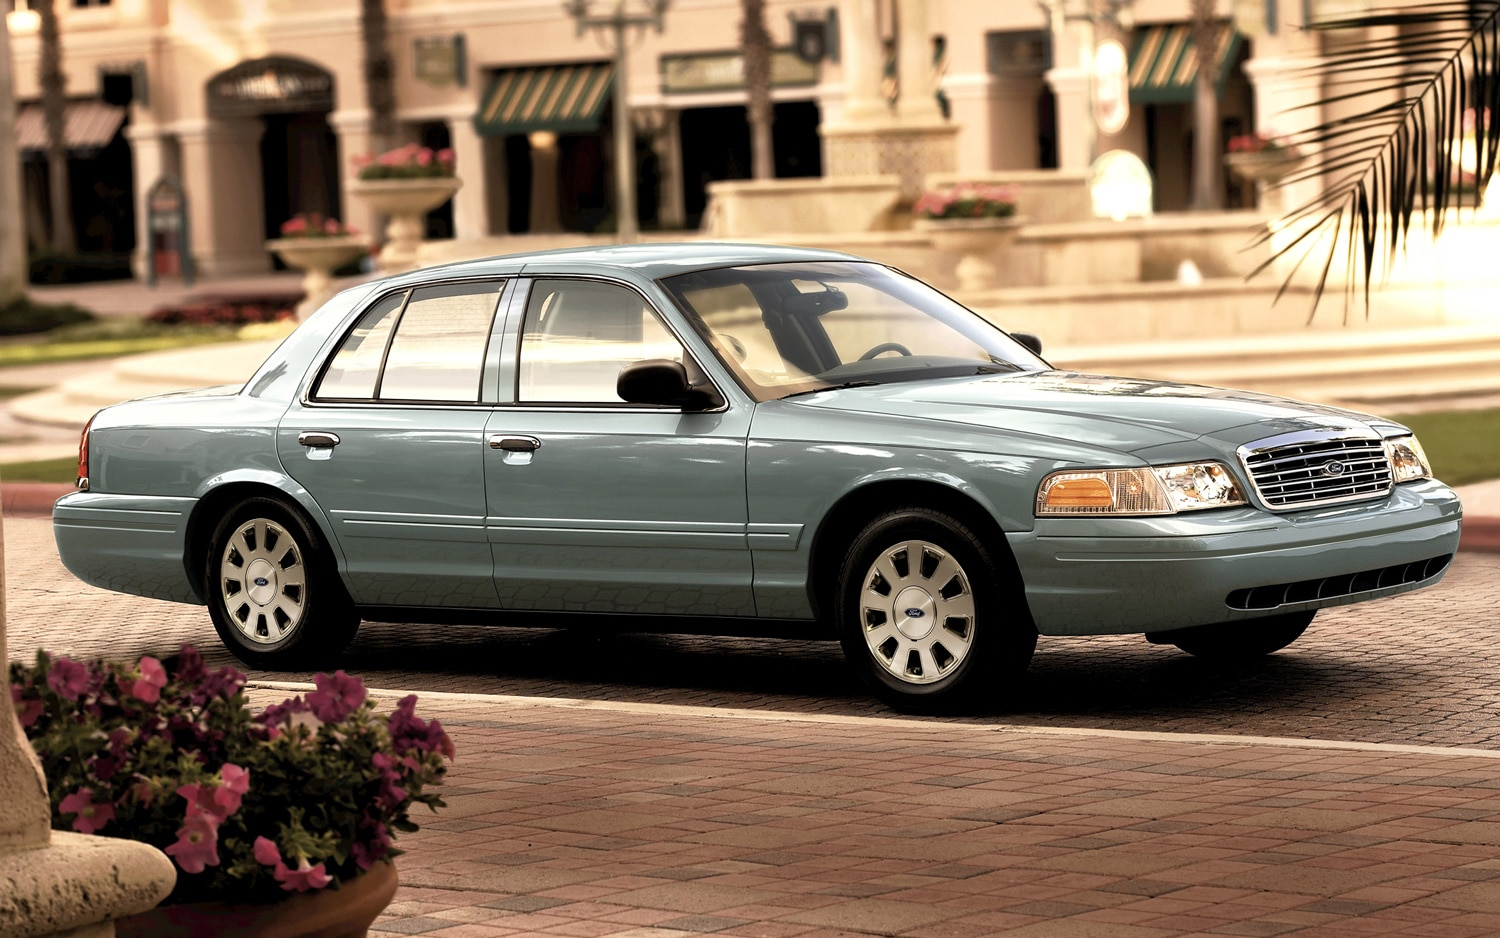 2010 Ford Crown Victoria Side View1